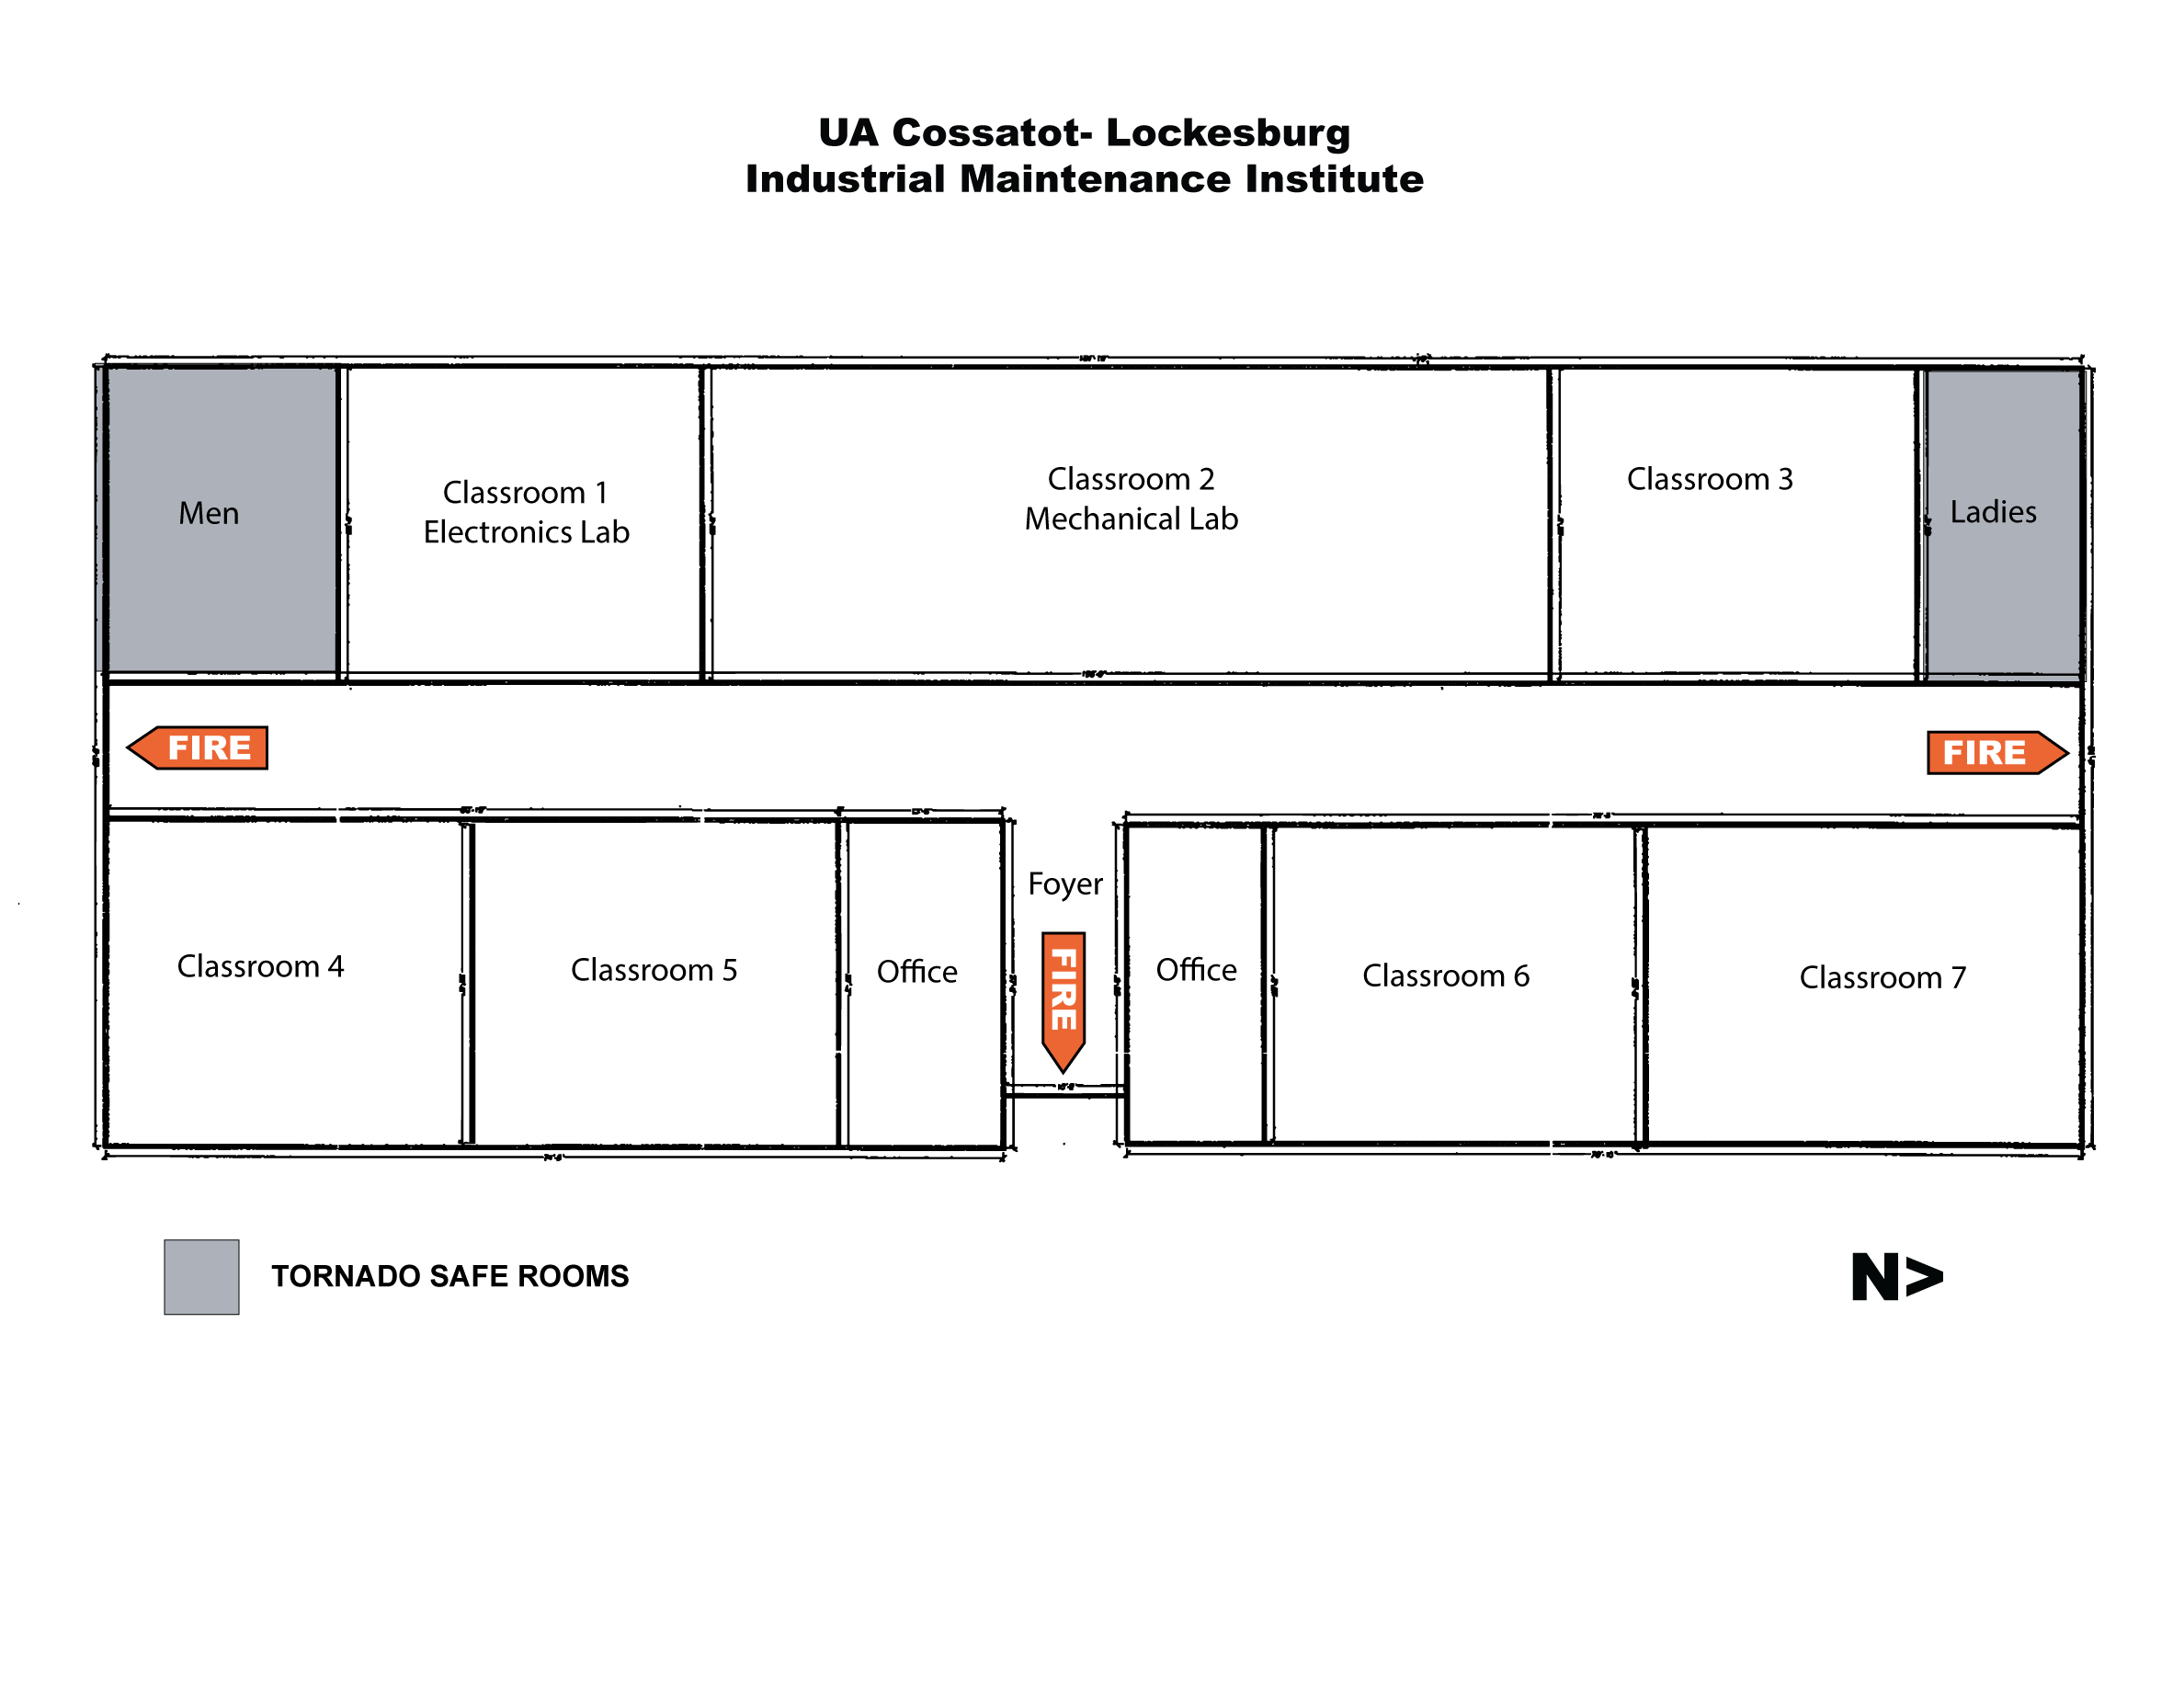 Map of the Lockesburg Industrial Maintenance Institute